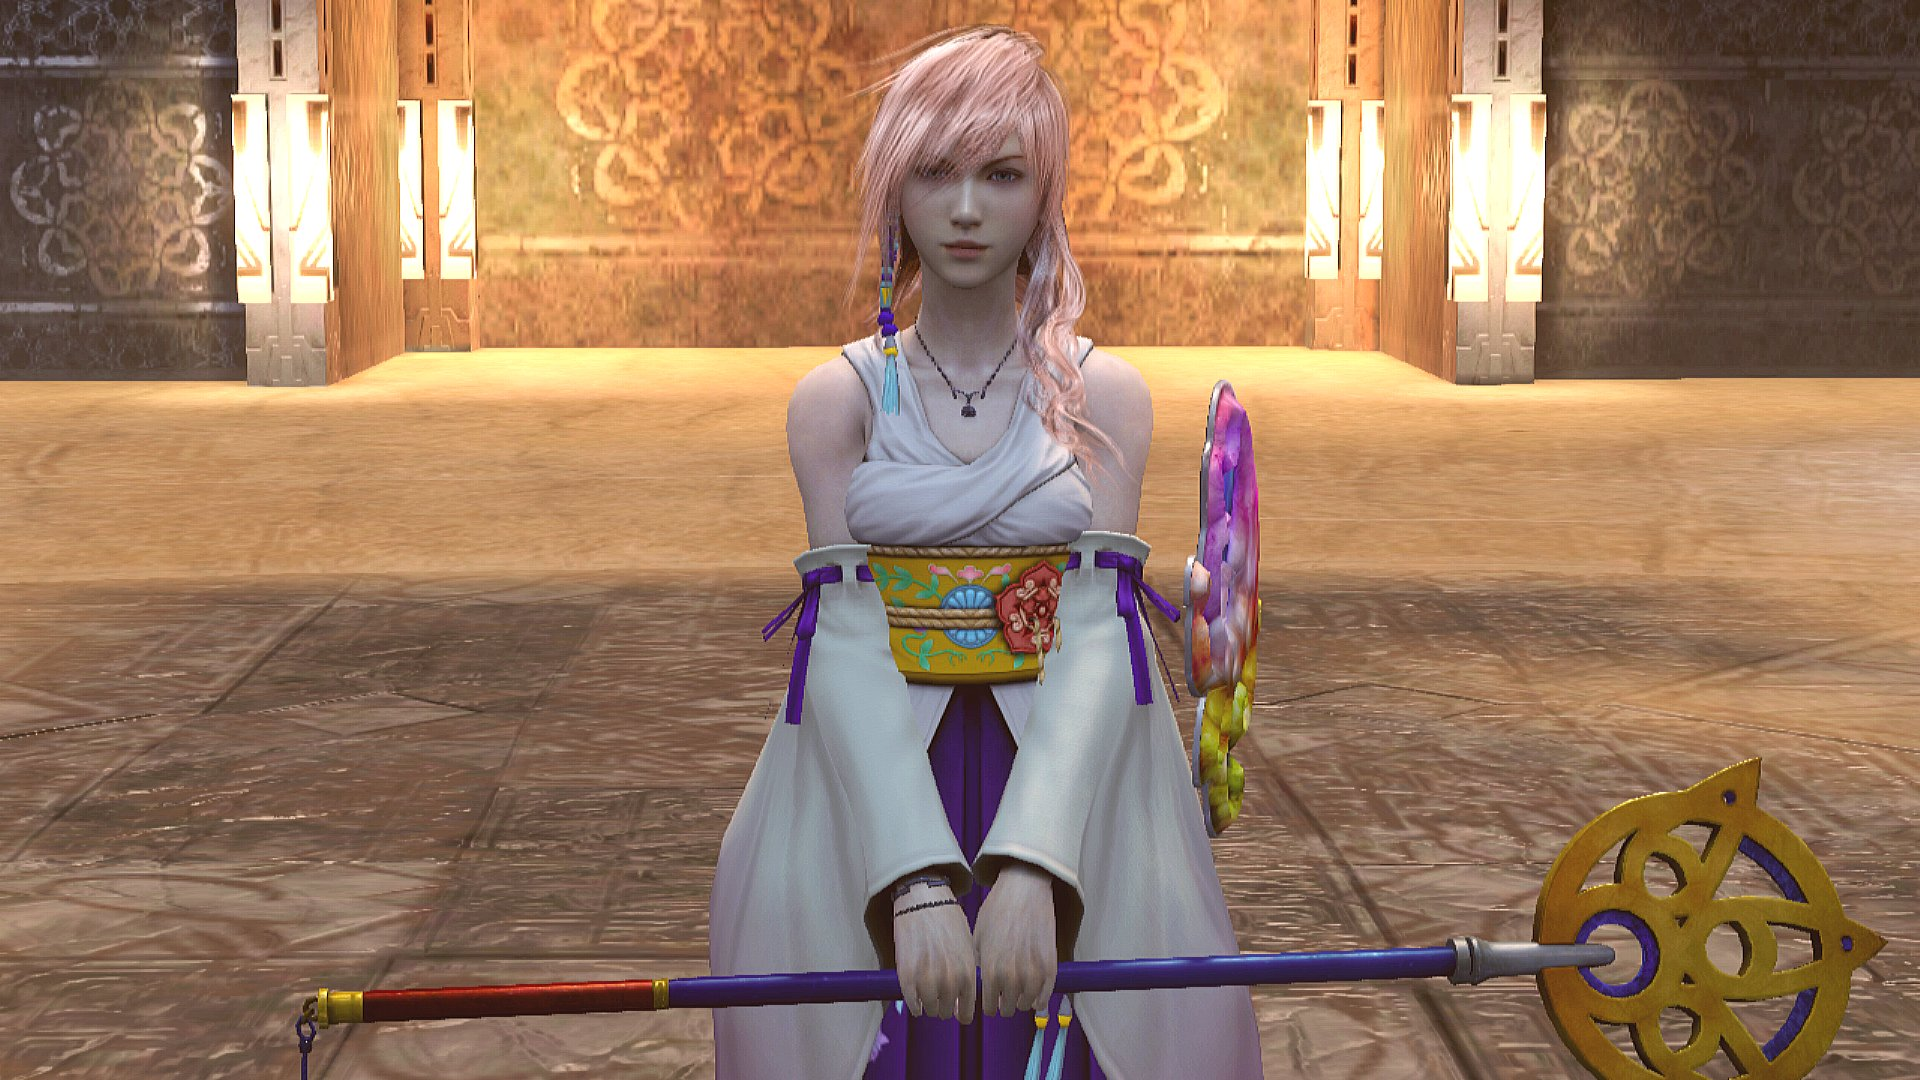 Yuna/Other appearances